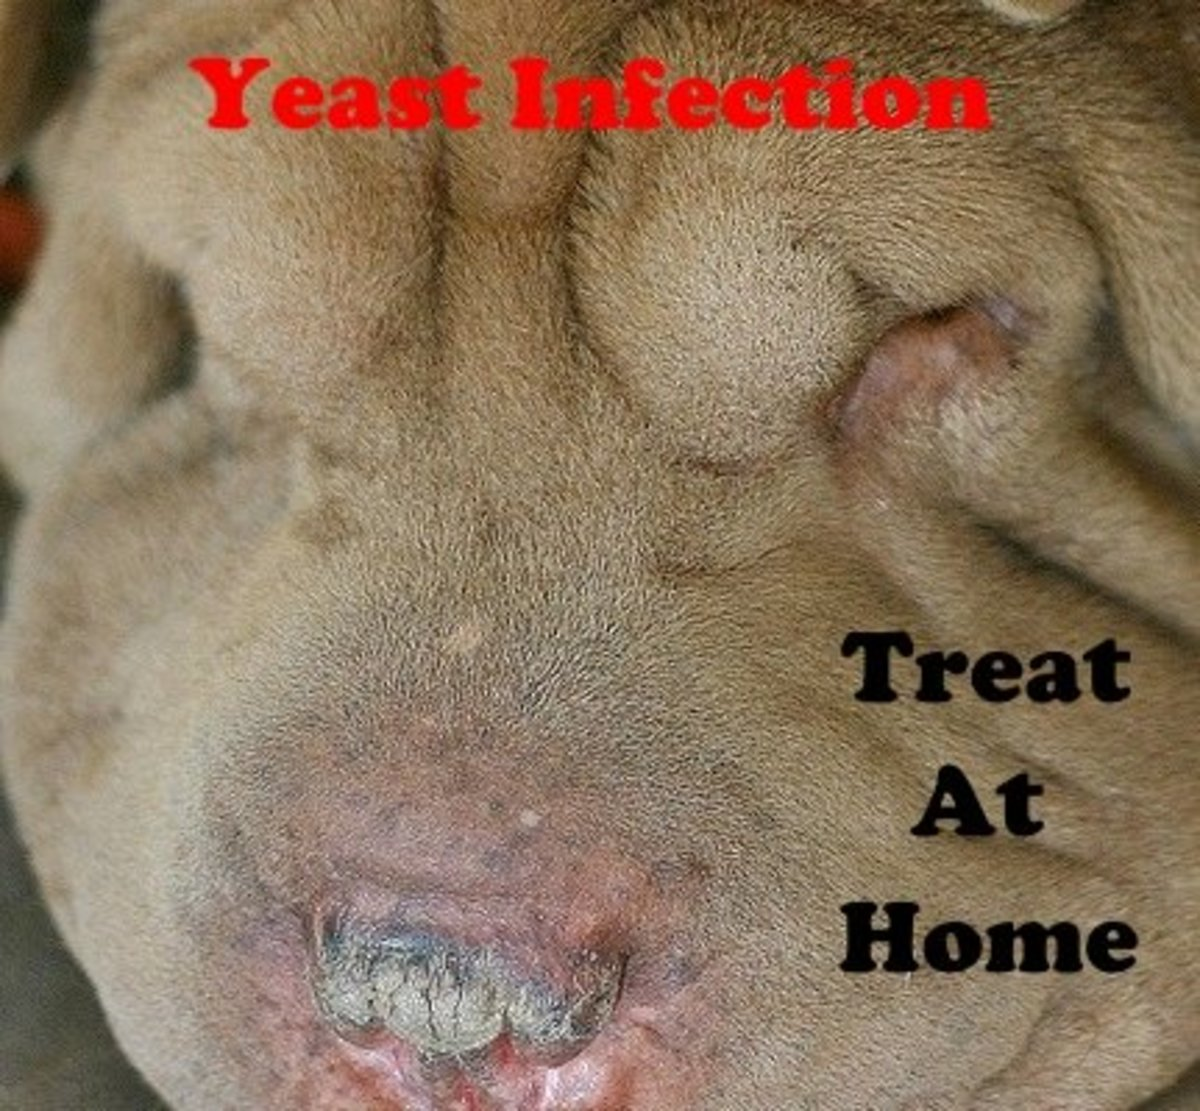 Treat Your Dog's Yeast Infection at Home Without Going to the Vet